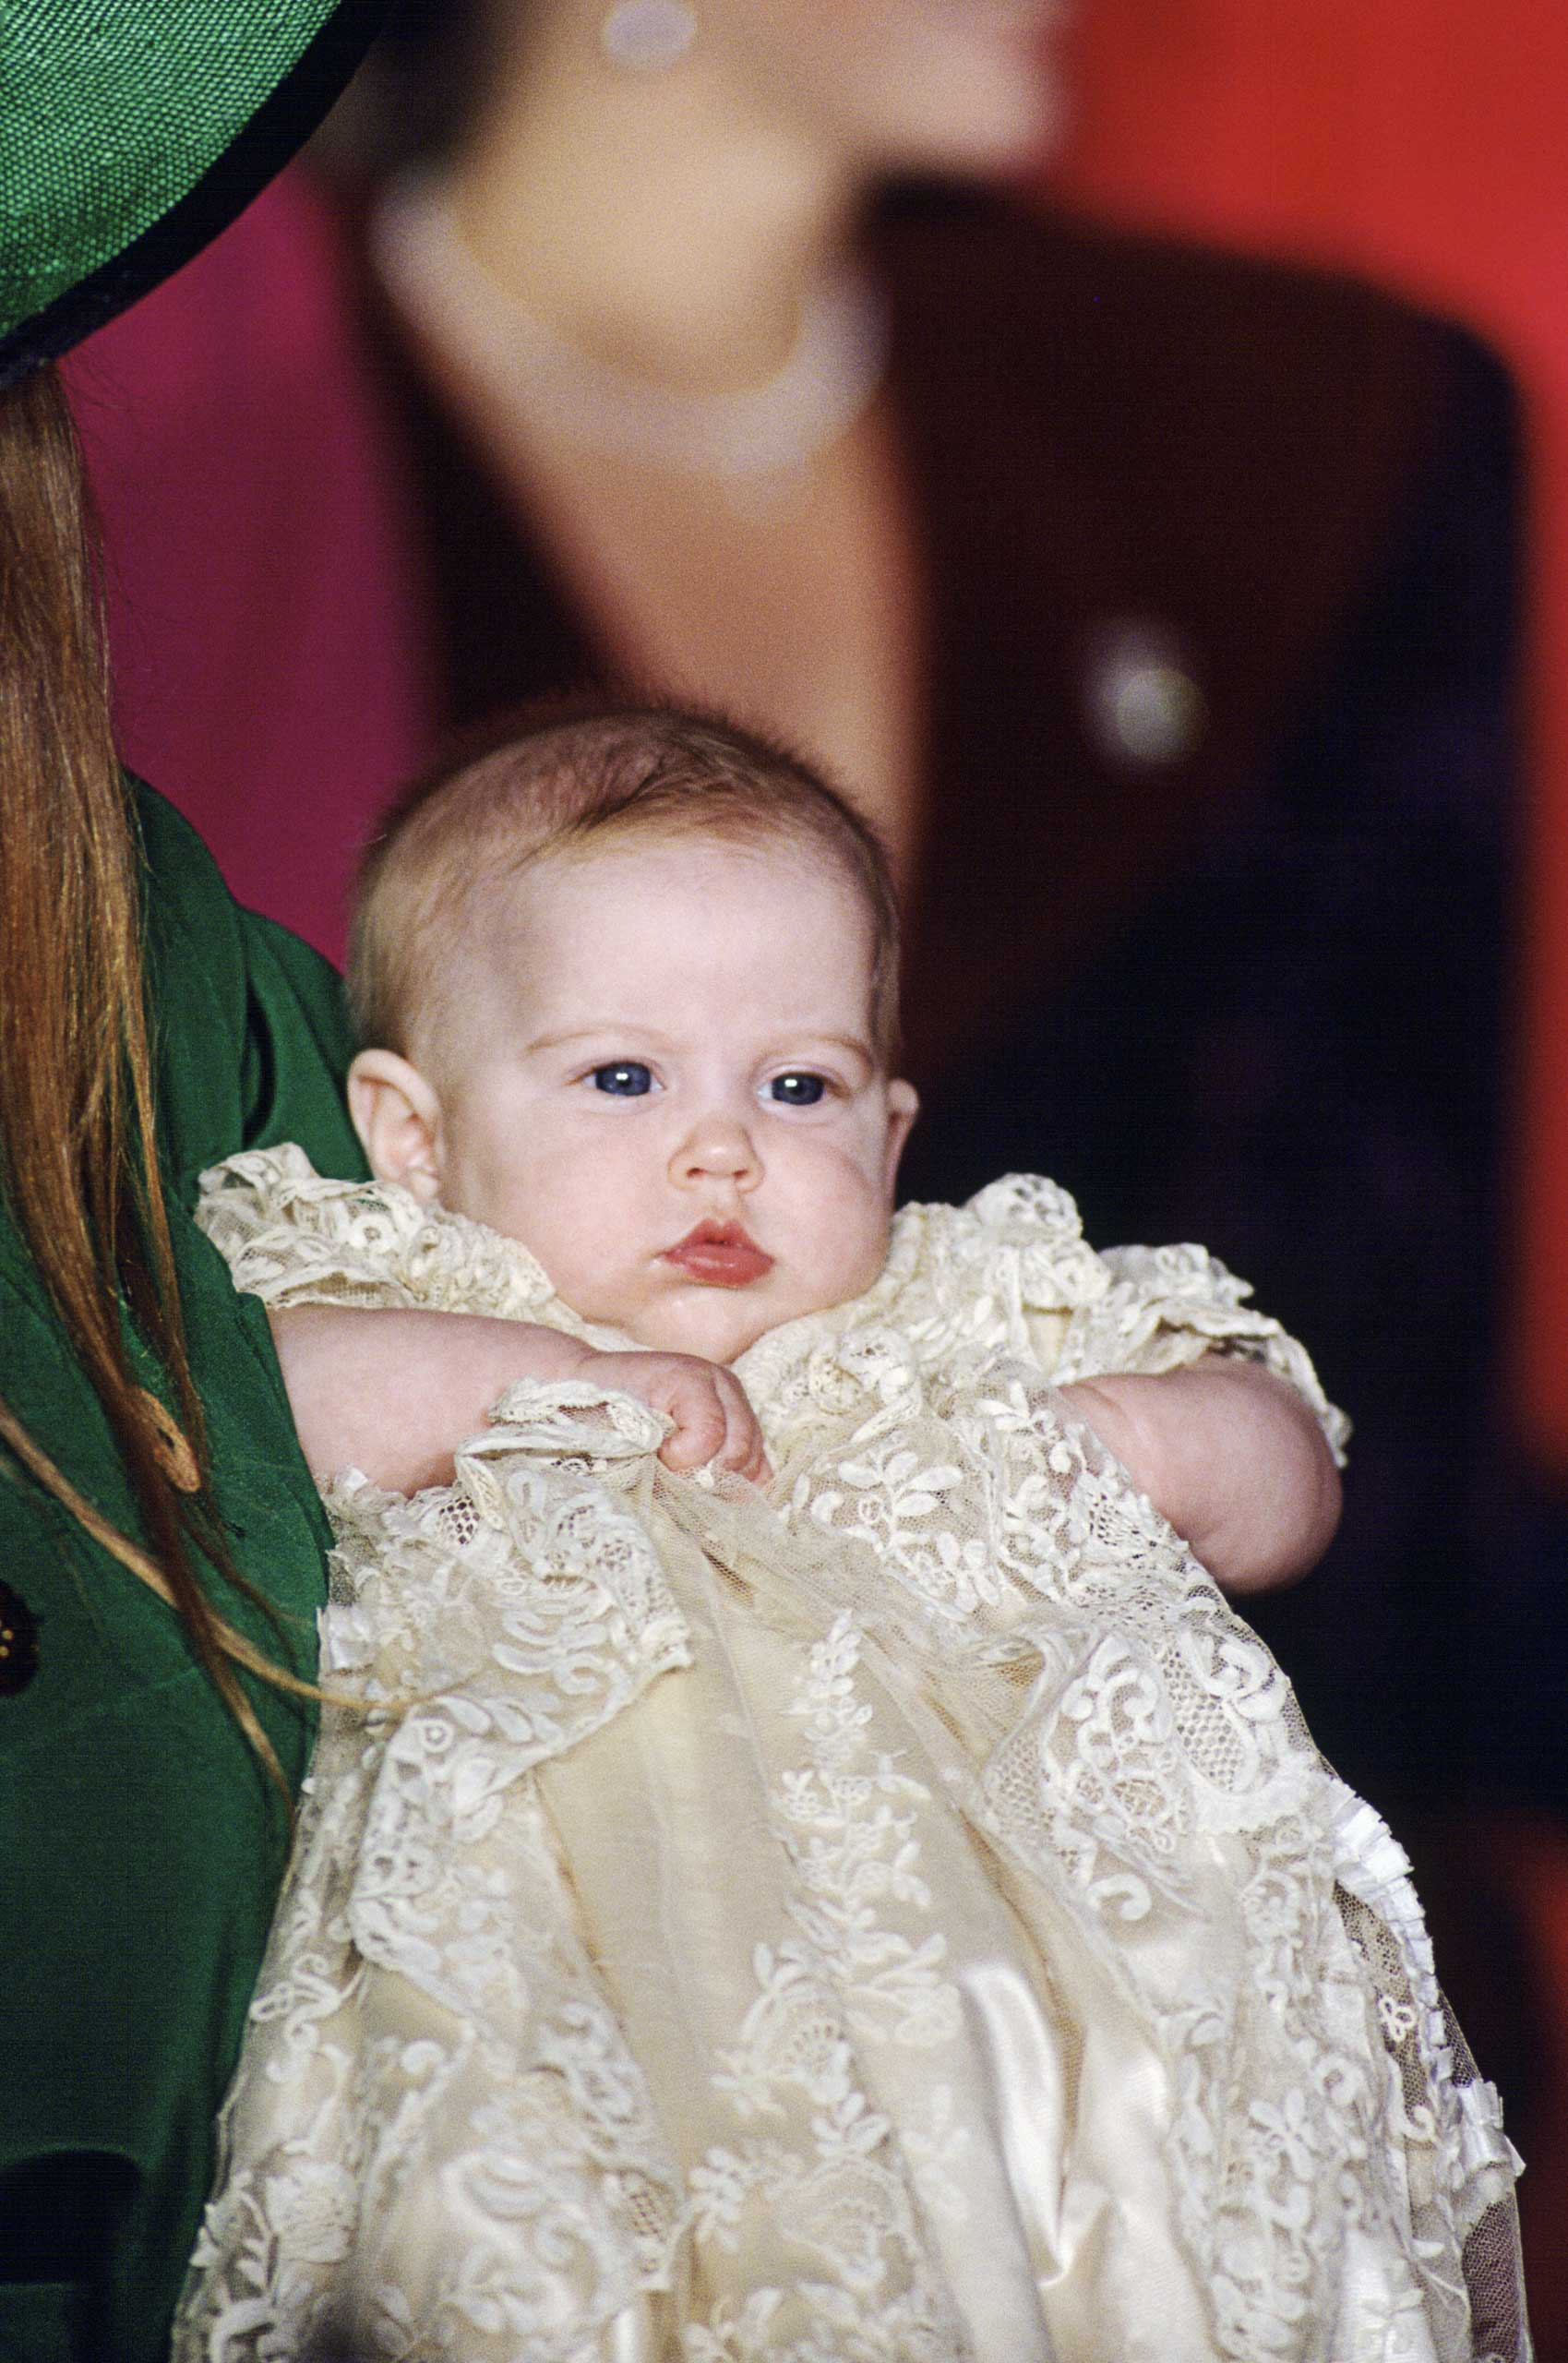 The spitting image of her dad Prince Andrew, but for the red hair inherited from mother Sarah, Duchess of York, Princess Beatrice looks pensive at her 1988 christening.